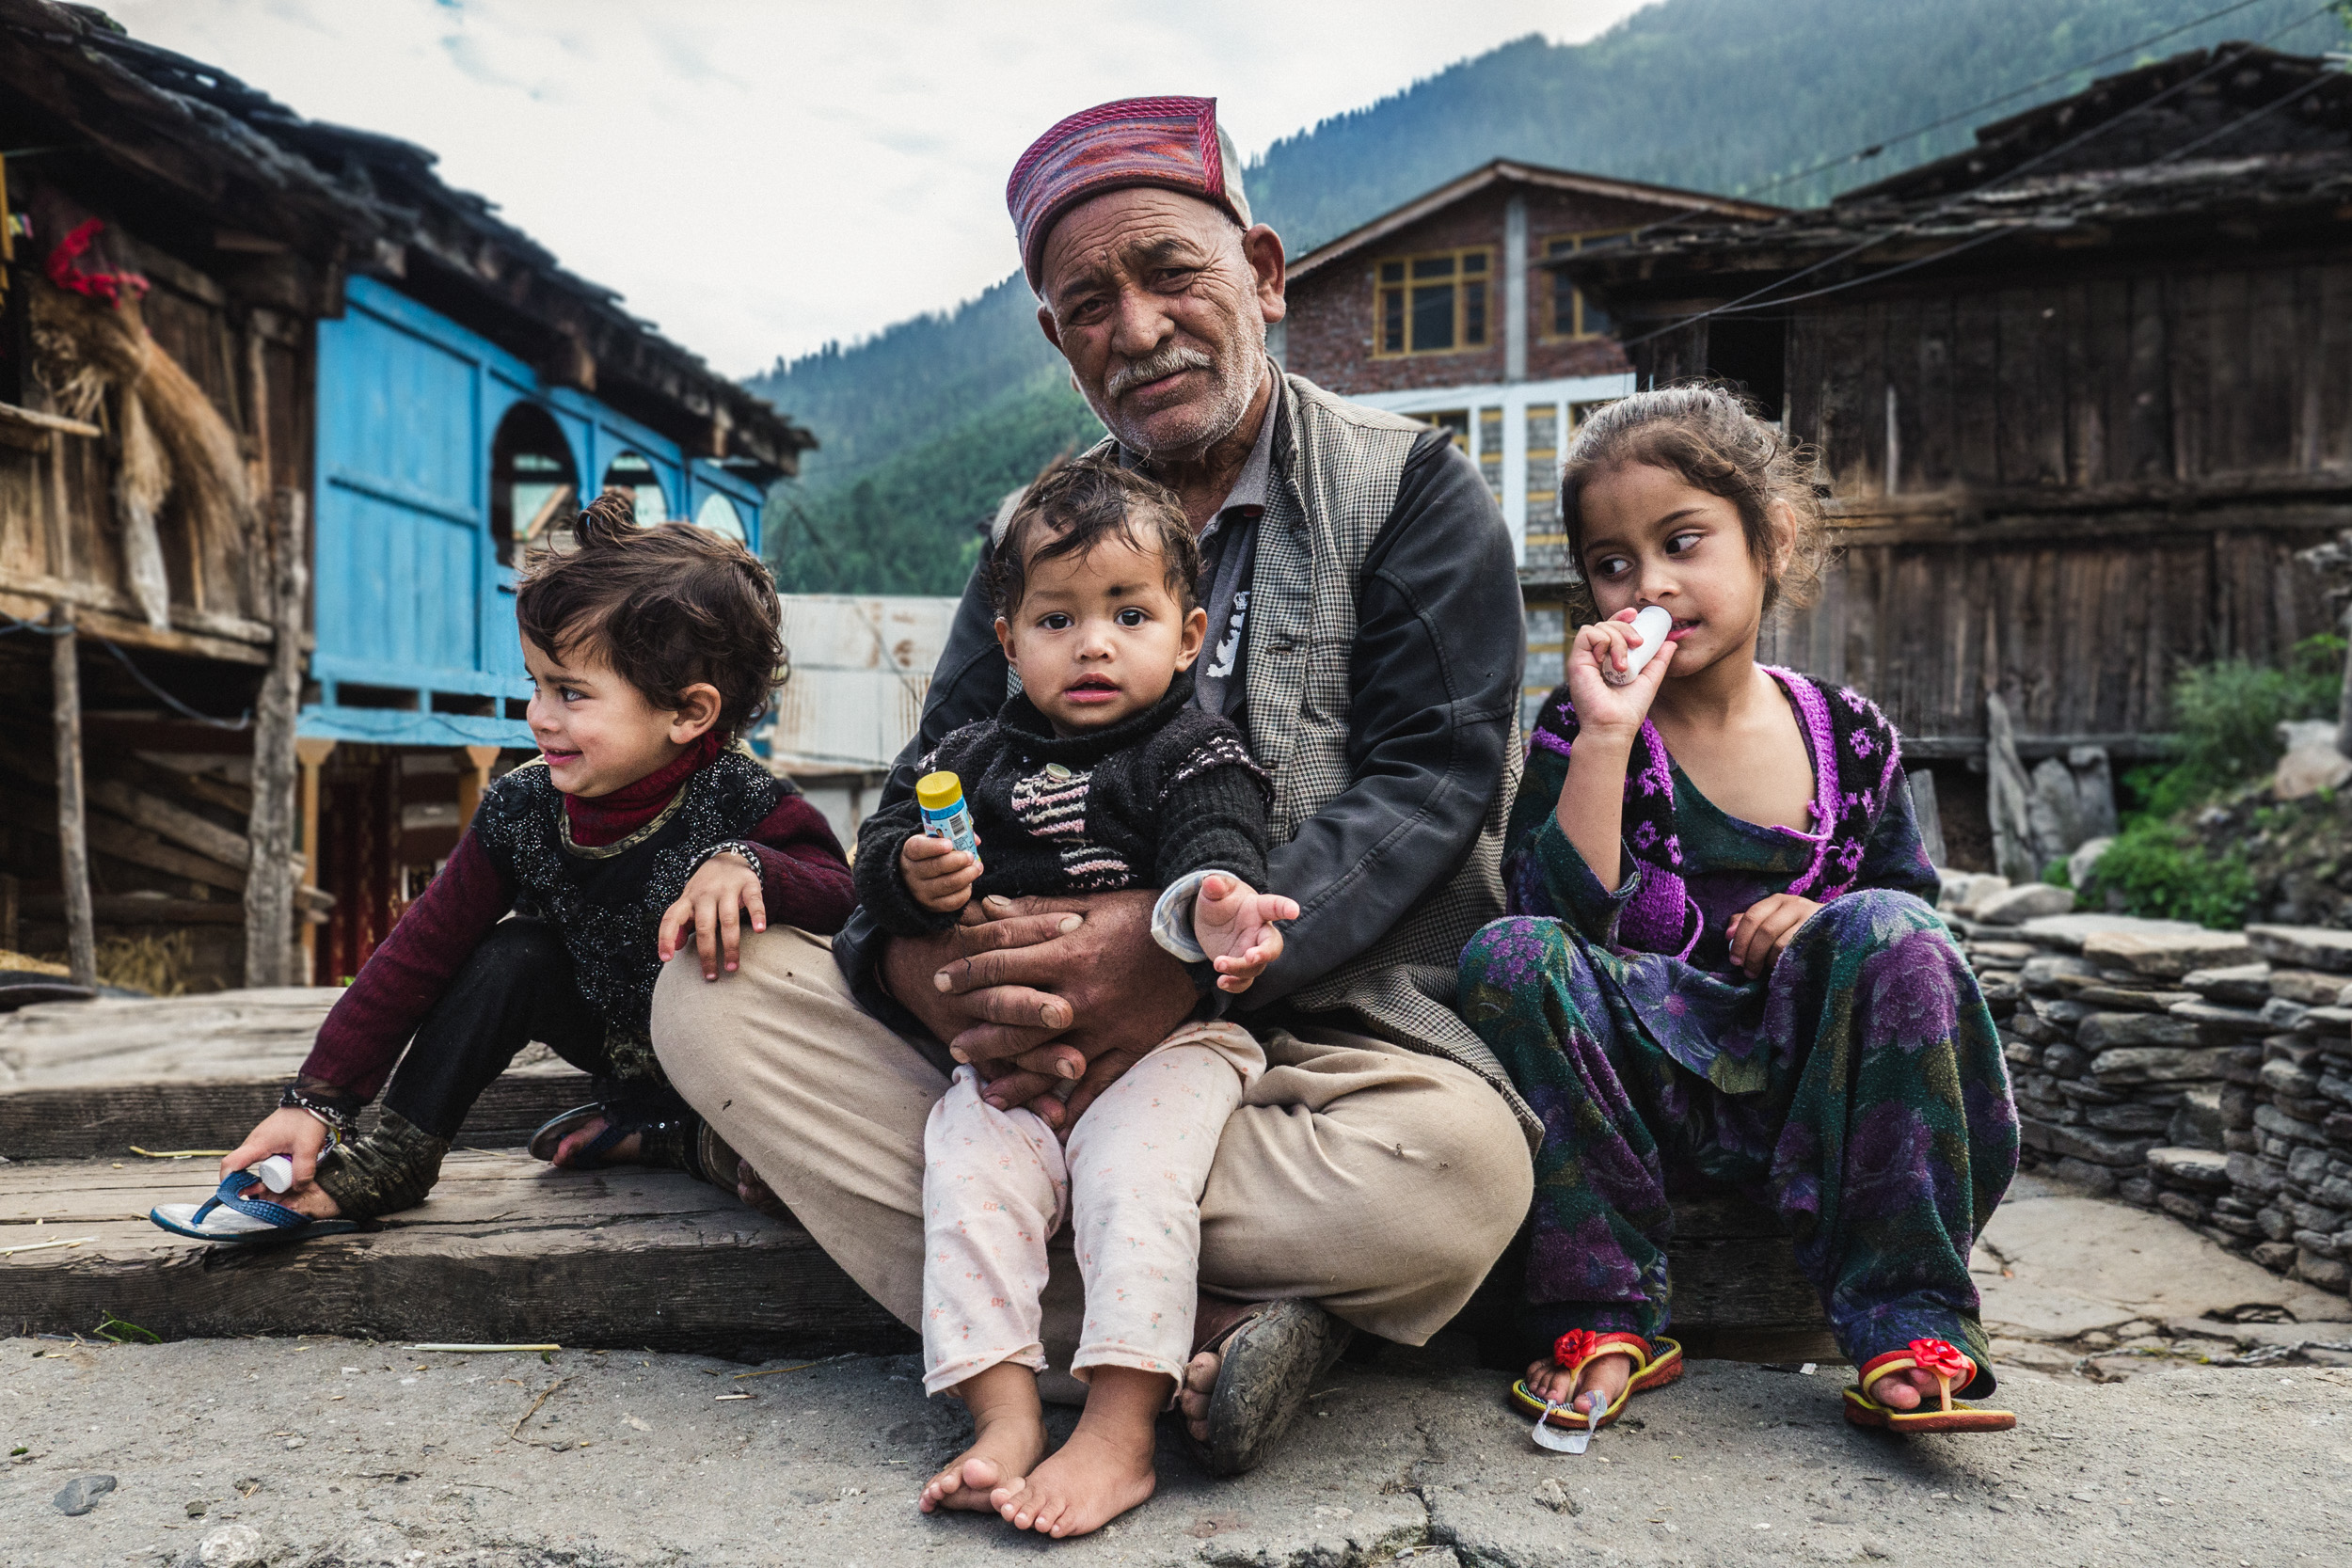 _20 Kids and grandfather Manali India .jpg